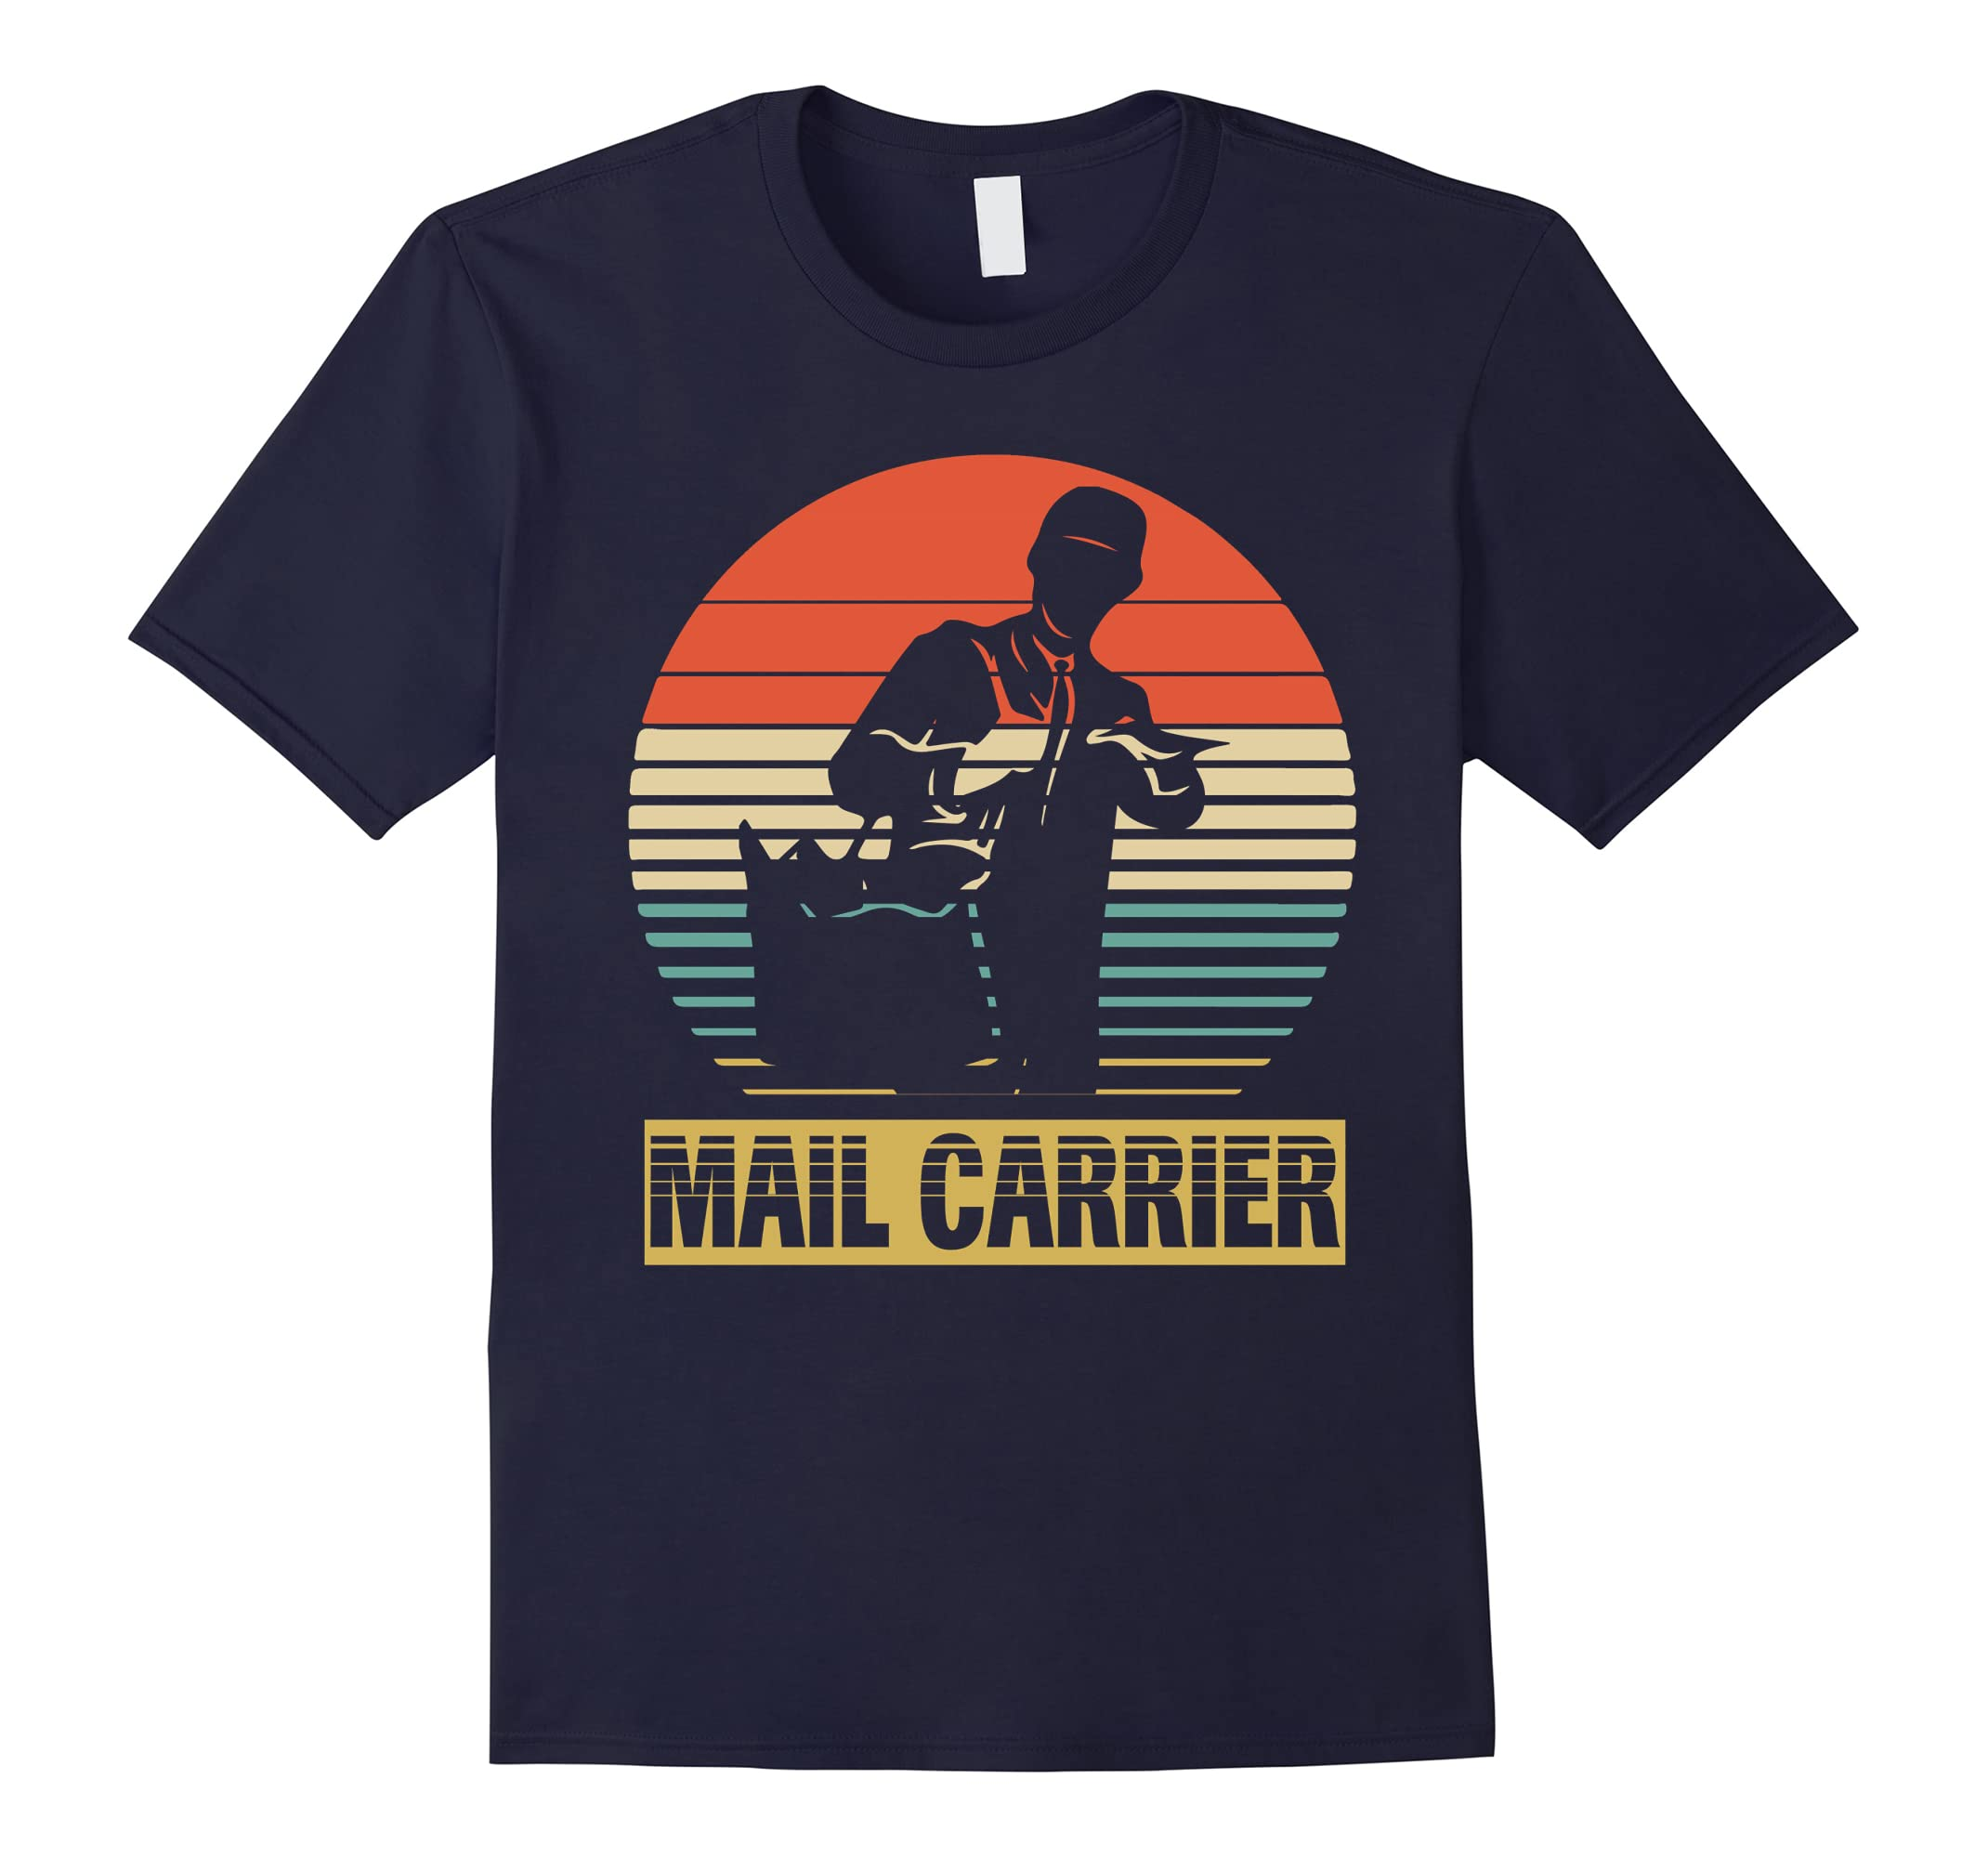 Vintage Shirt For Mail Carrier Birthday Gifts Ideal RT